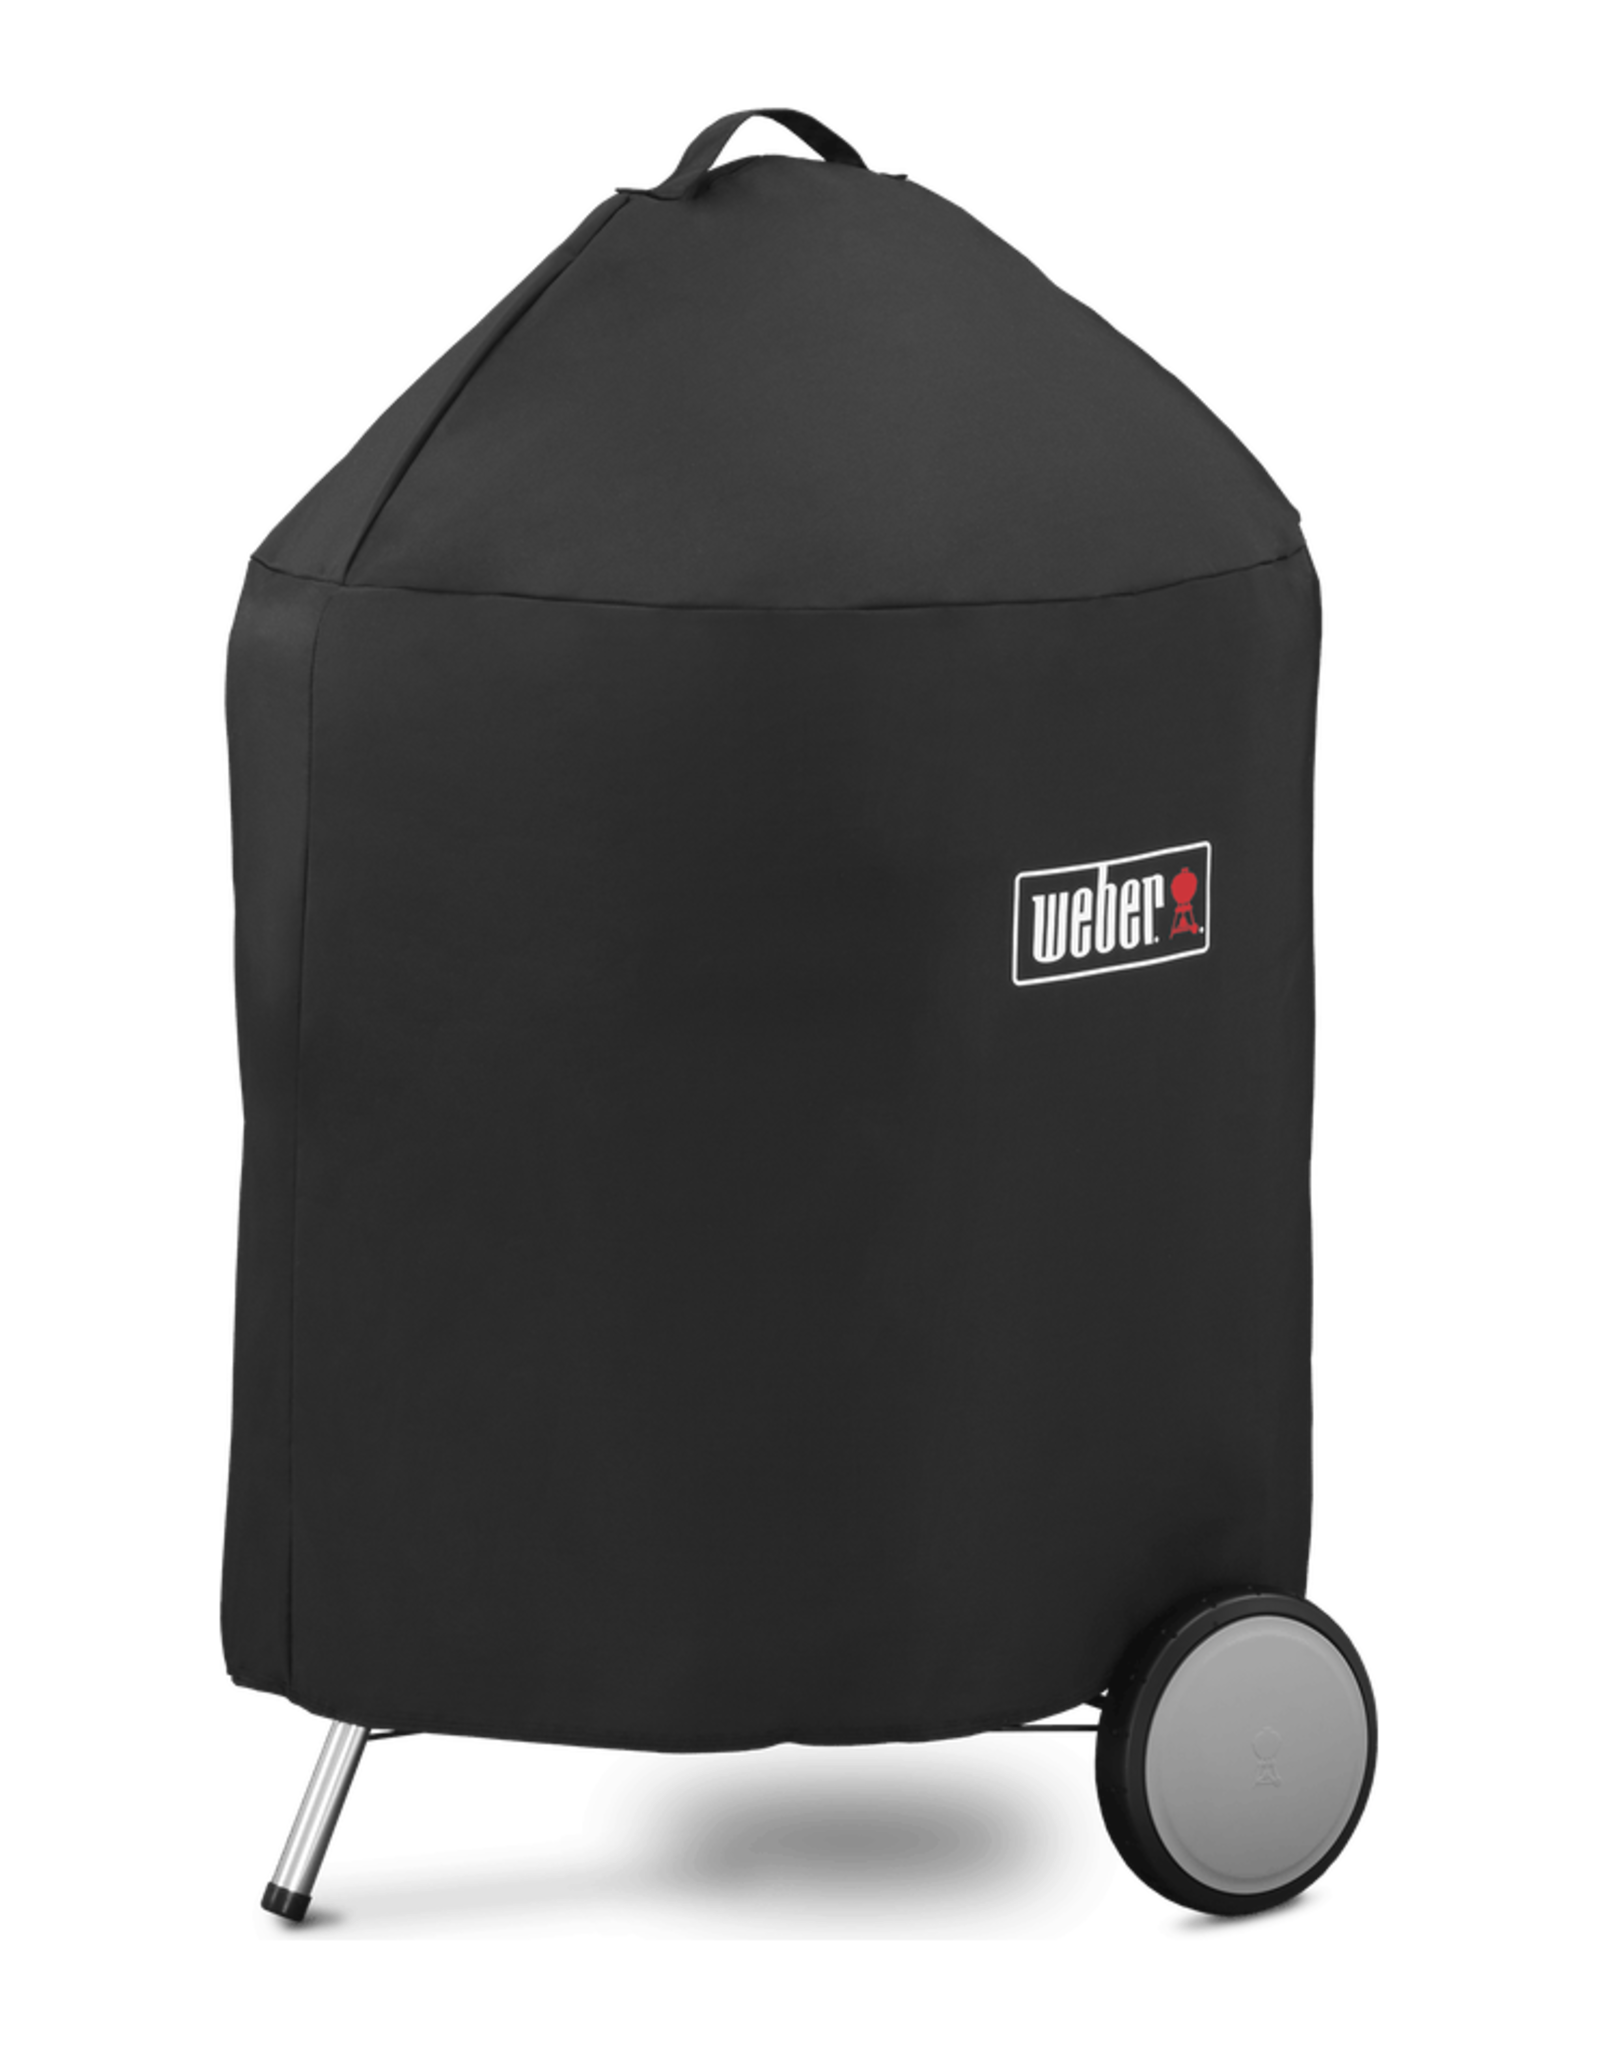 Weber Premium Grill Cover - Fits 22'' charcoal grills